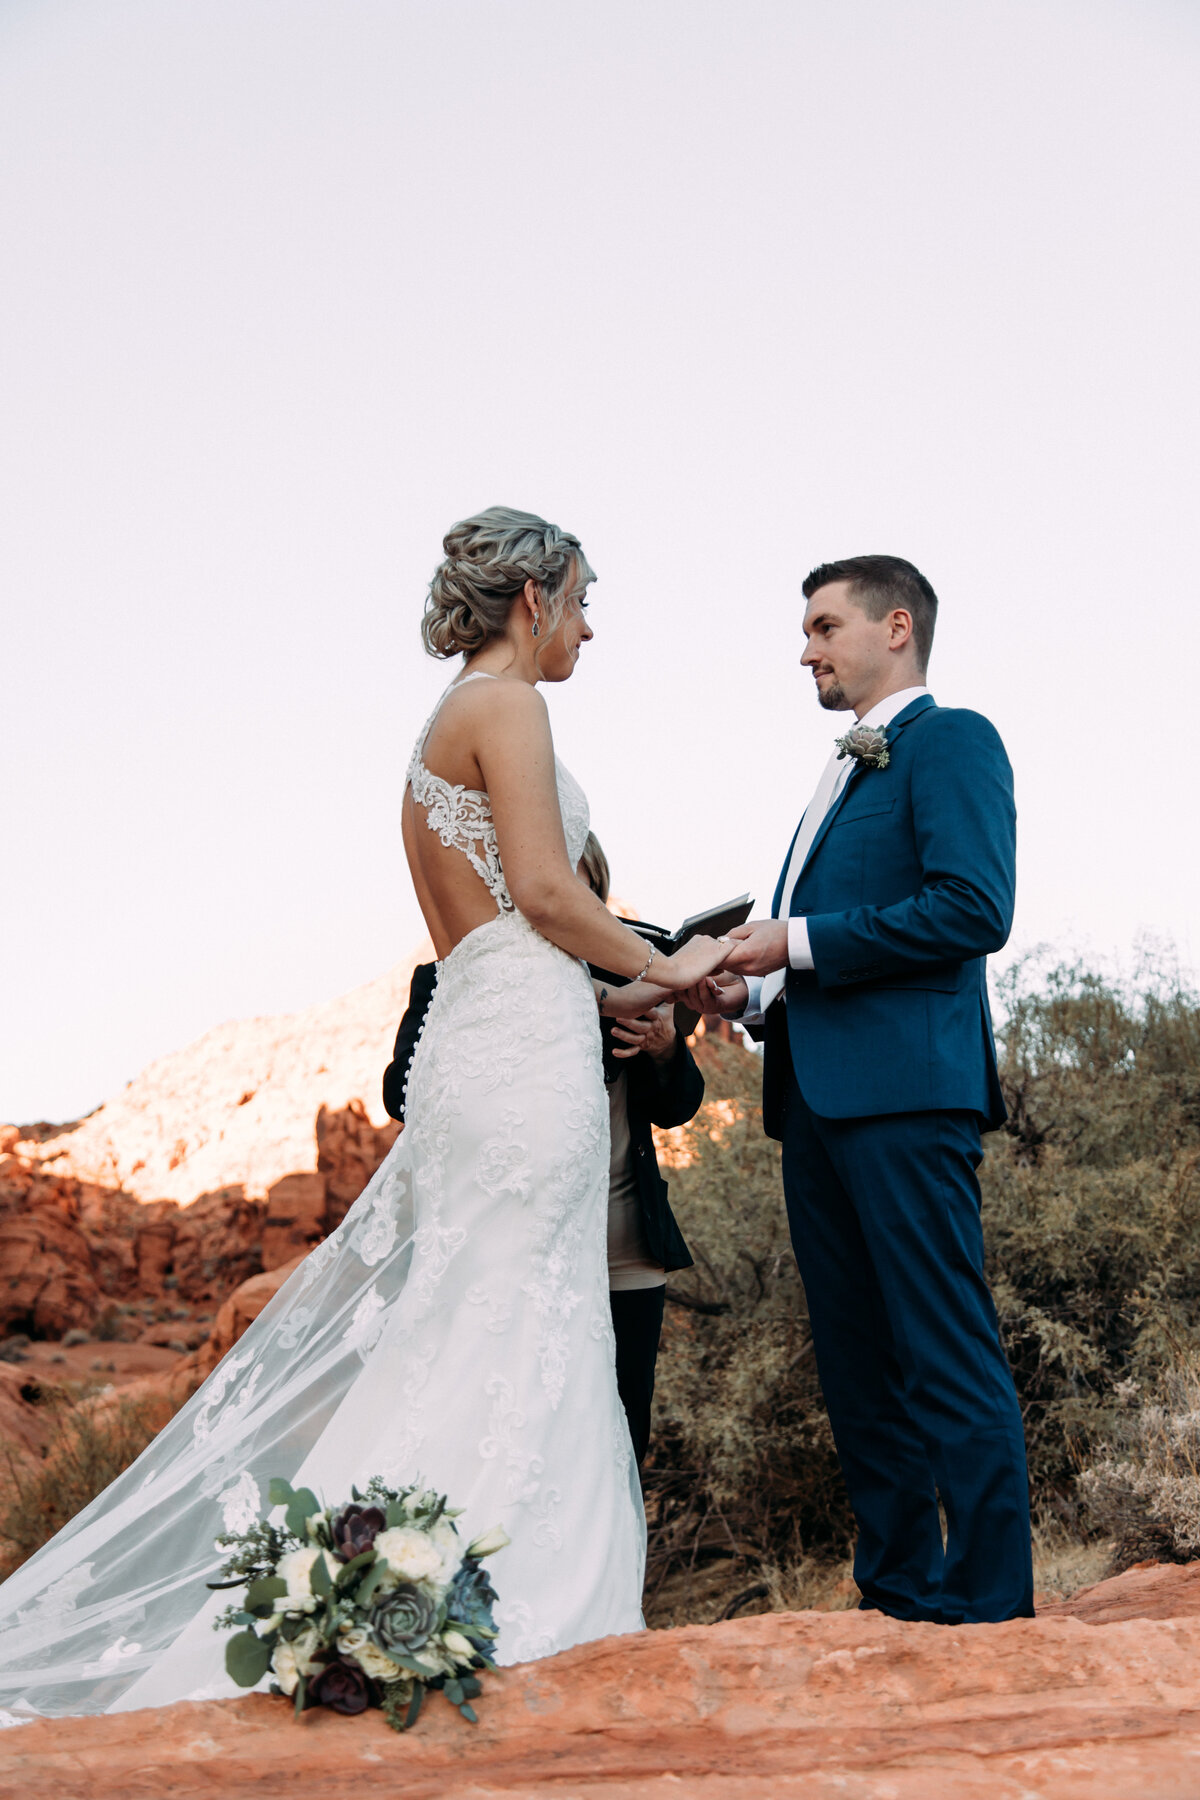 Heather+Ivan|AshlynSavannahPhoto|ValleyofFireElopement-3